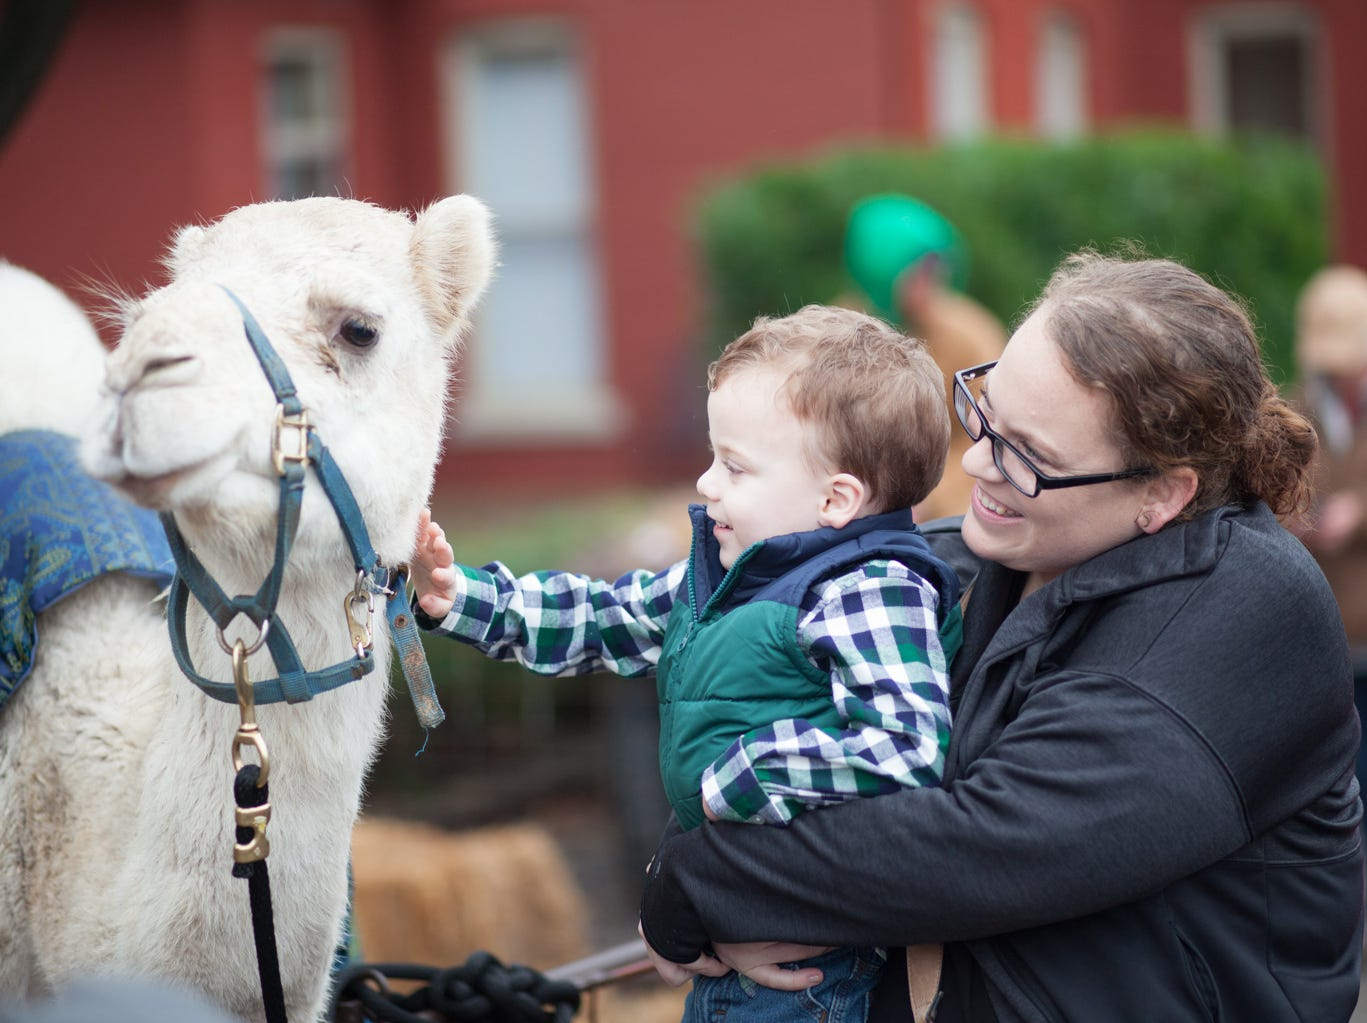 The live nativity scene at the Spirit Fest drew many attendees who wanted to pet live camels and donkeys on Saturday, Dec. 1, 2018, in Clarksville, Tenn.